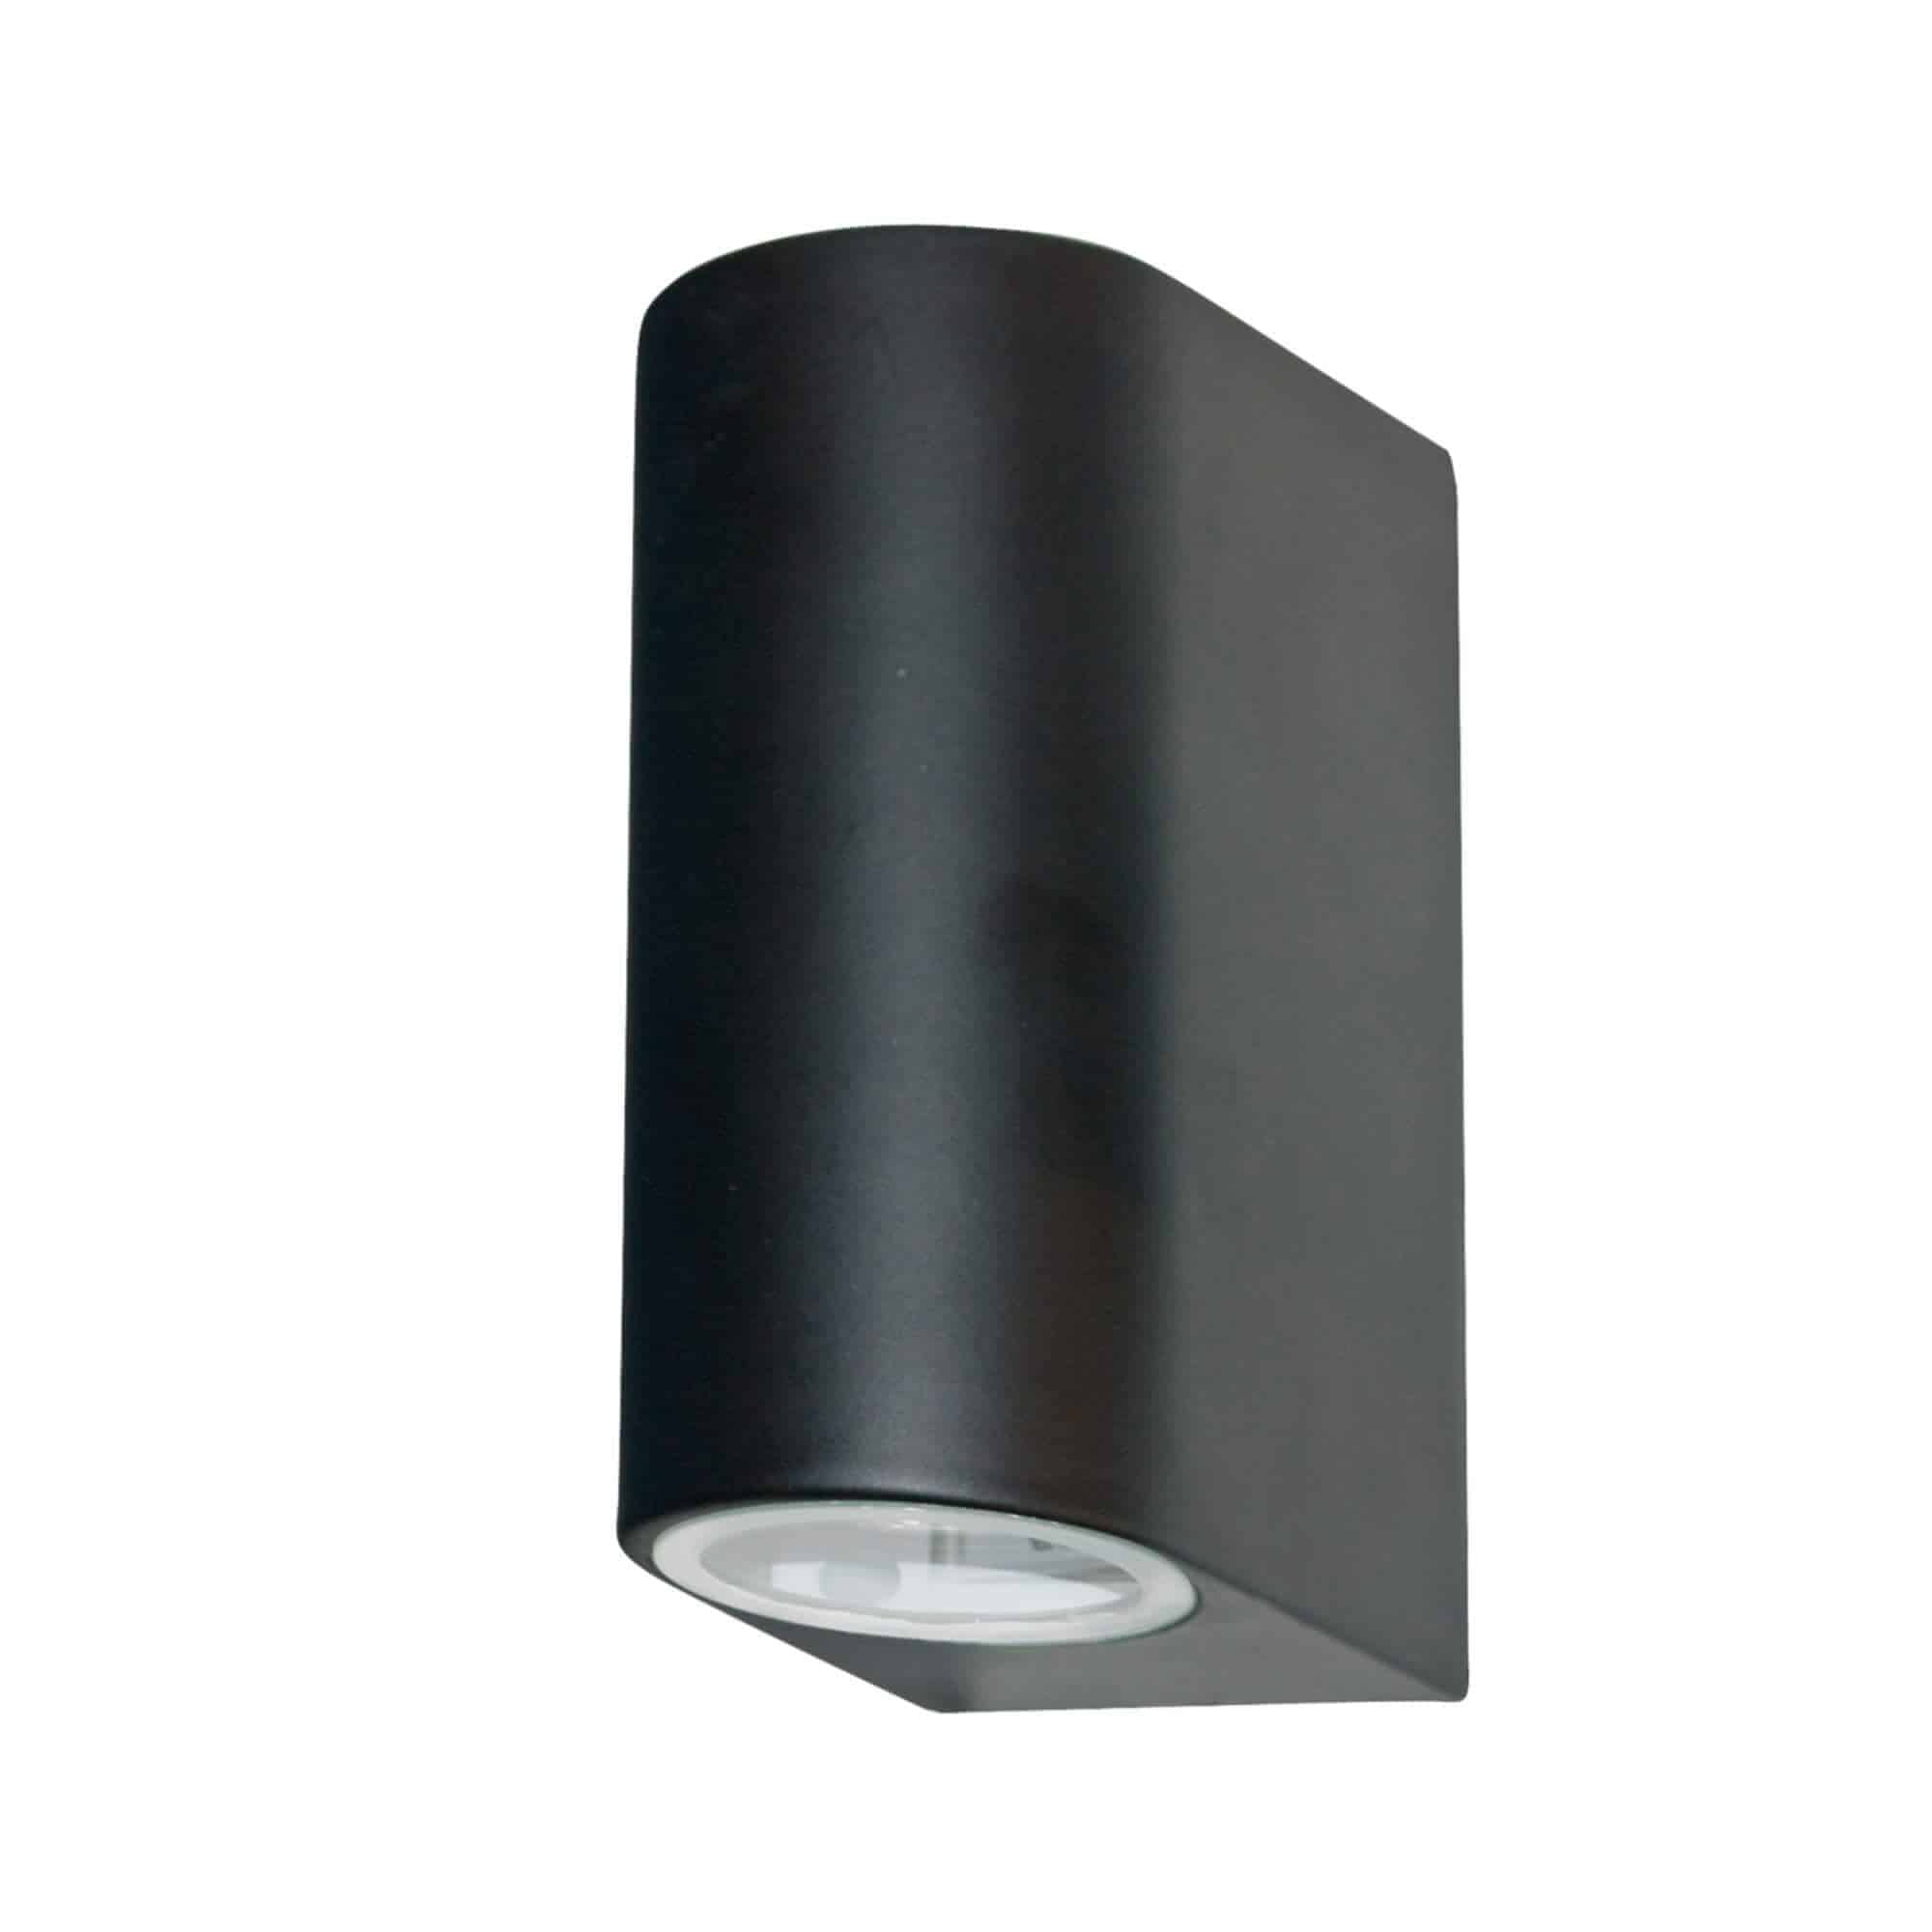 8008-2BK-LED – Searchlight LED Black Outdoor & Porch IP44 Wall Light 2 Light